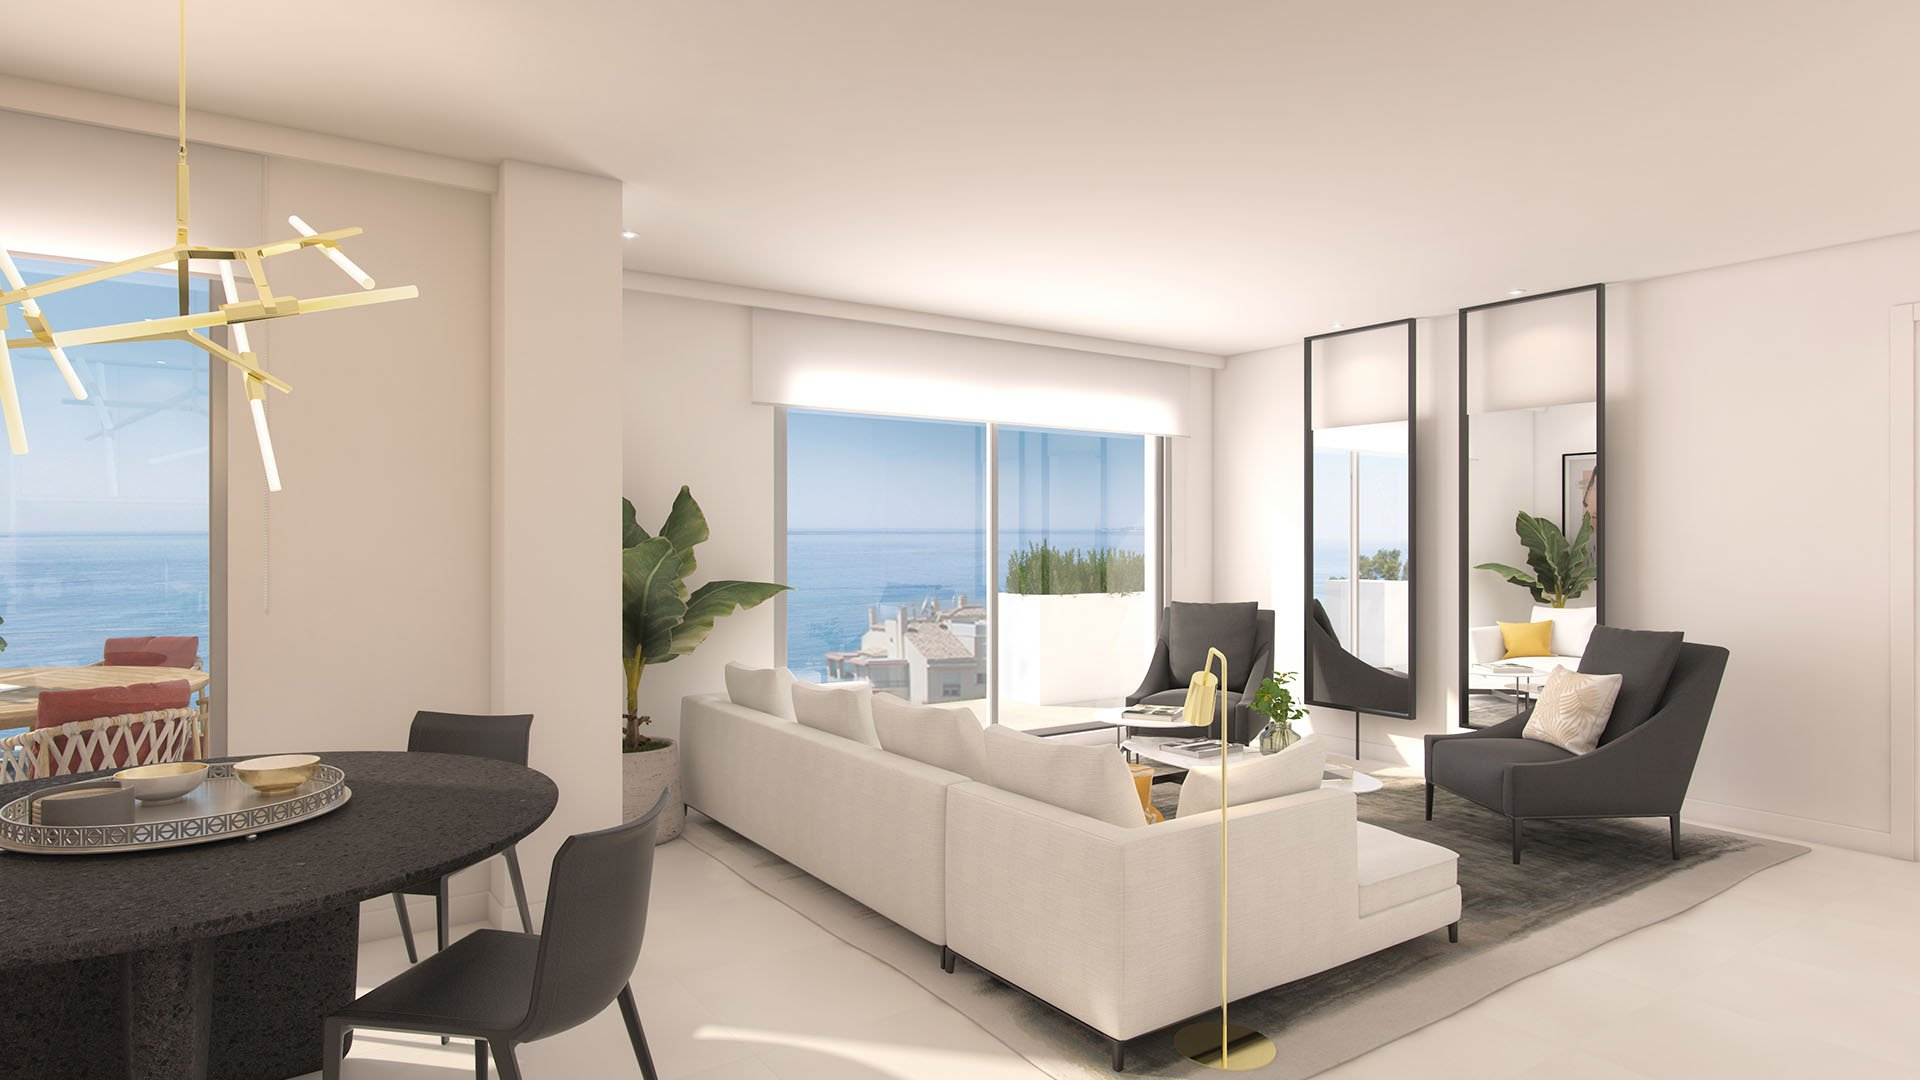 Lar Bay: Modern apartments near the beach with amazing views